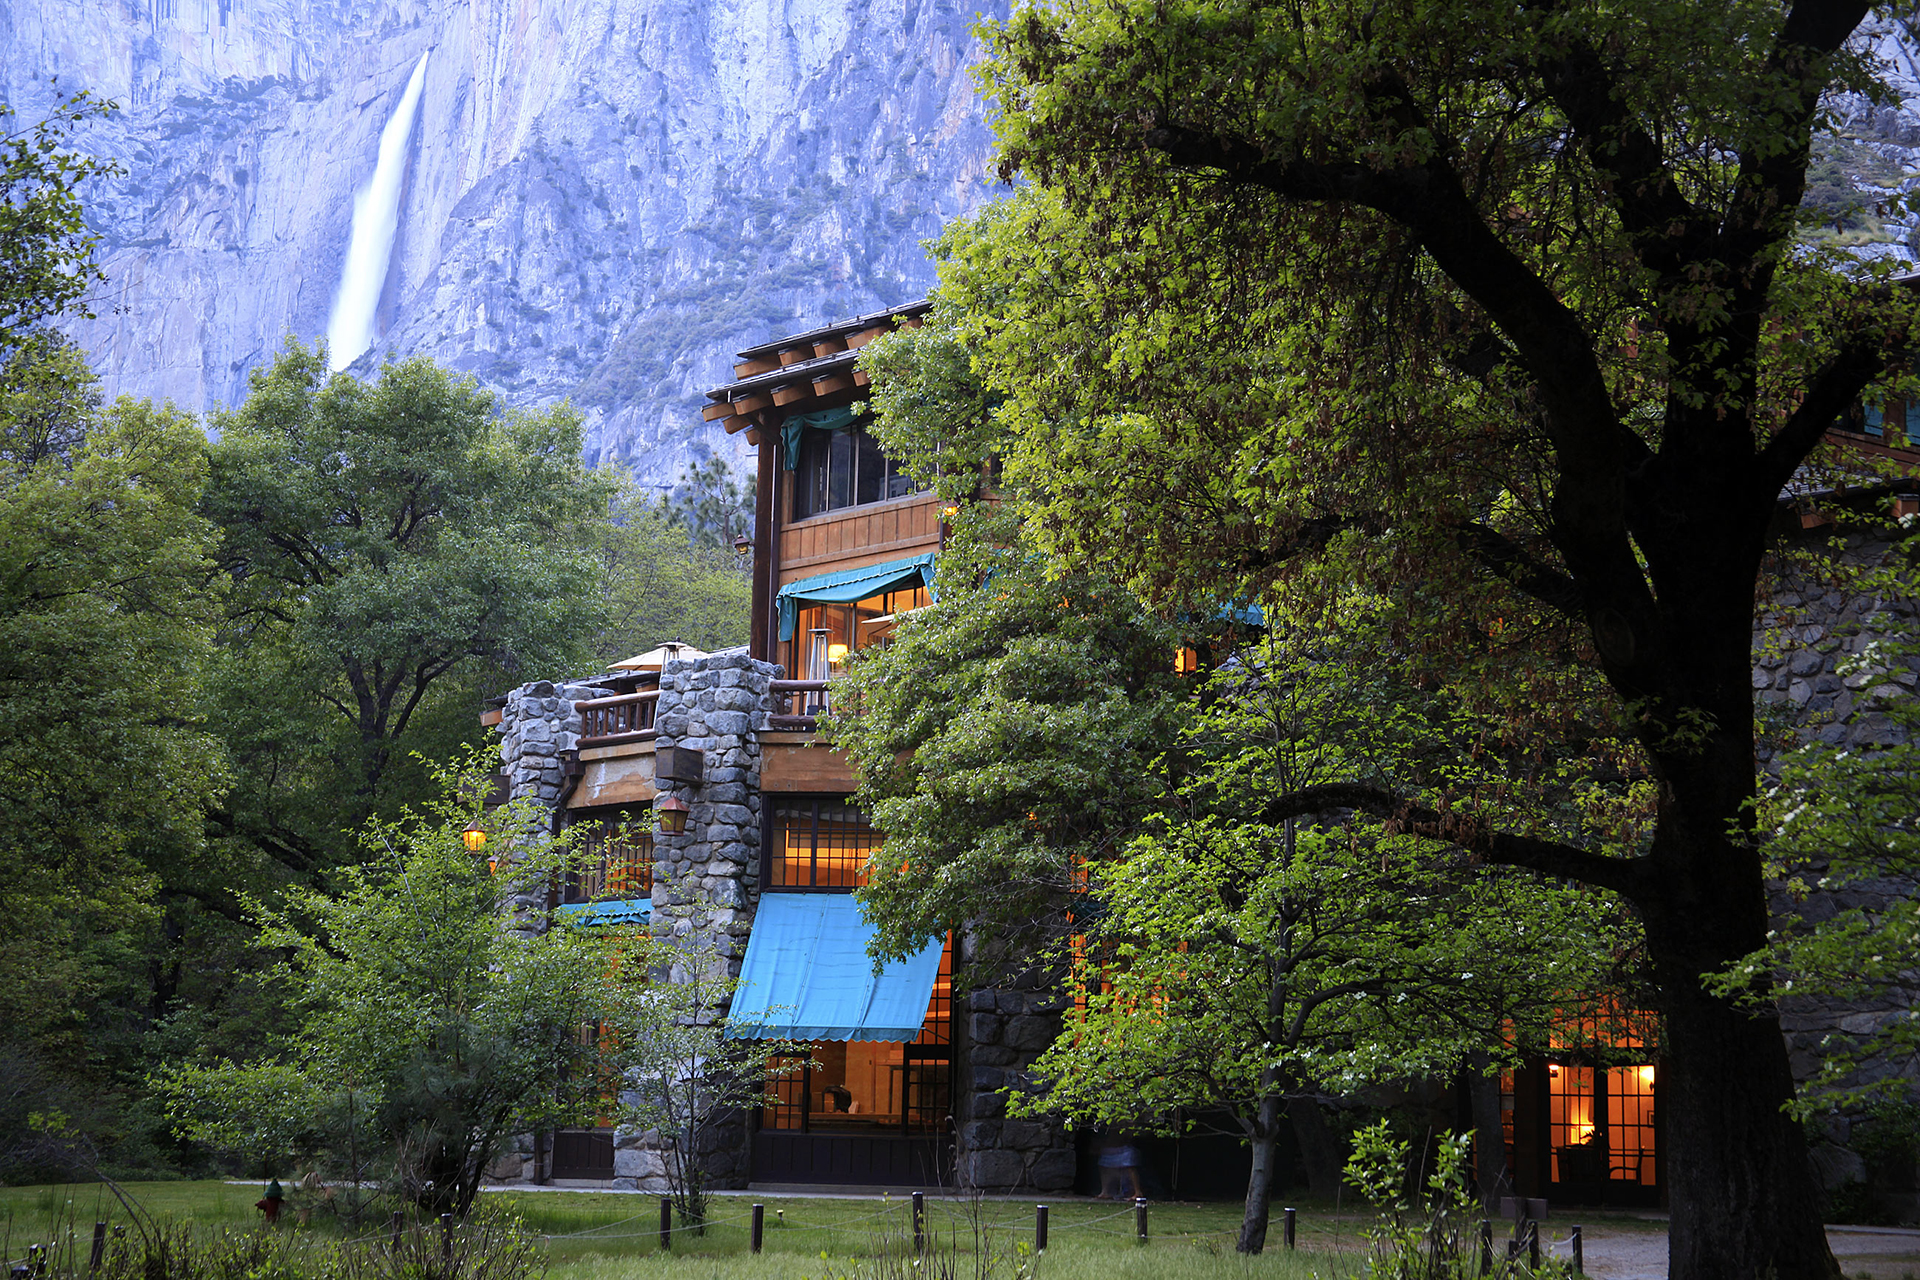 The Majestic Yosemite Hotel; Courtesy of The Majestic Yosemite Hotel